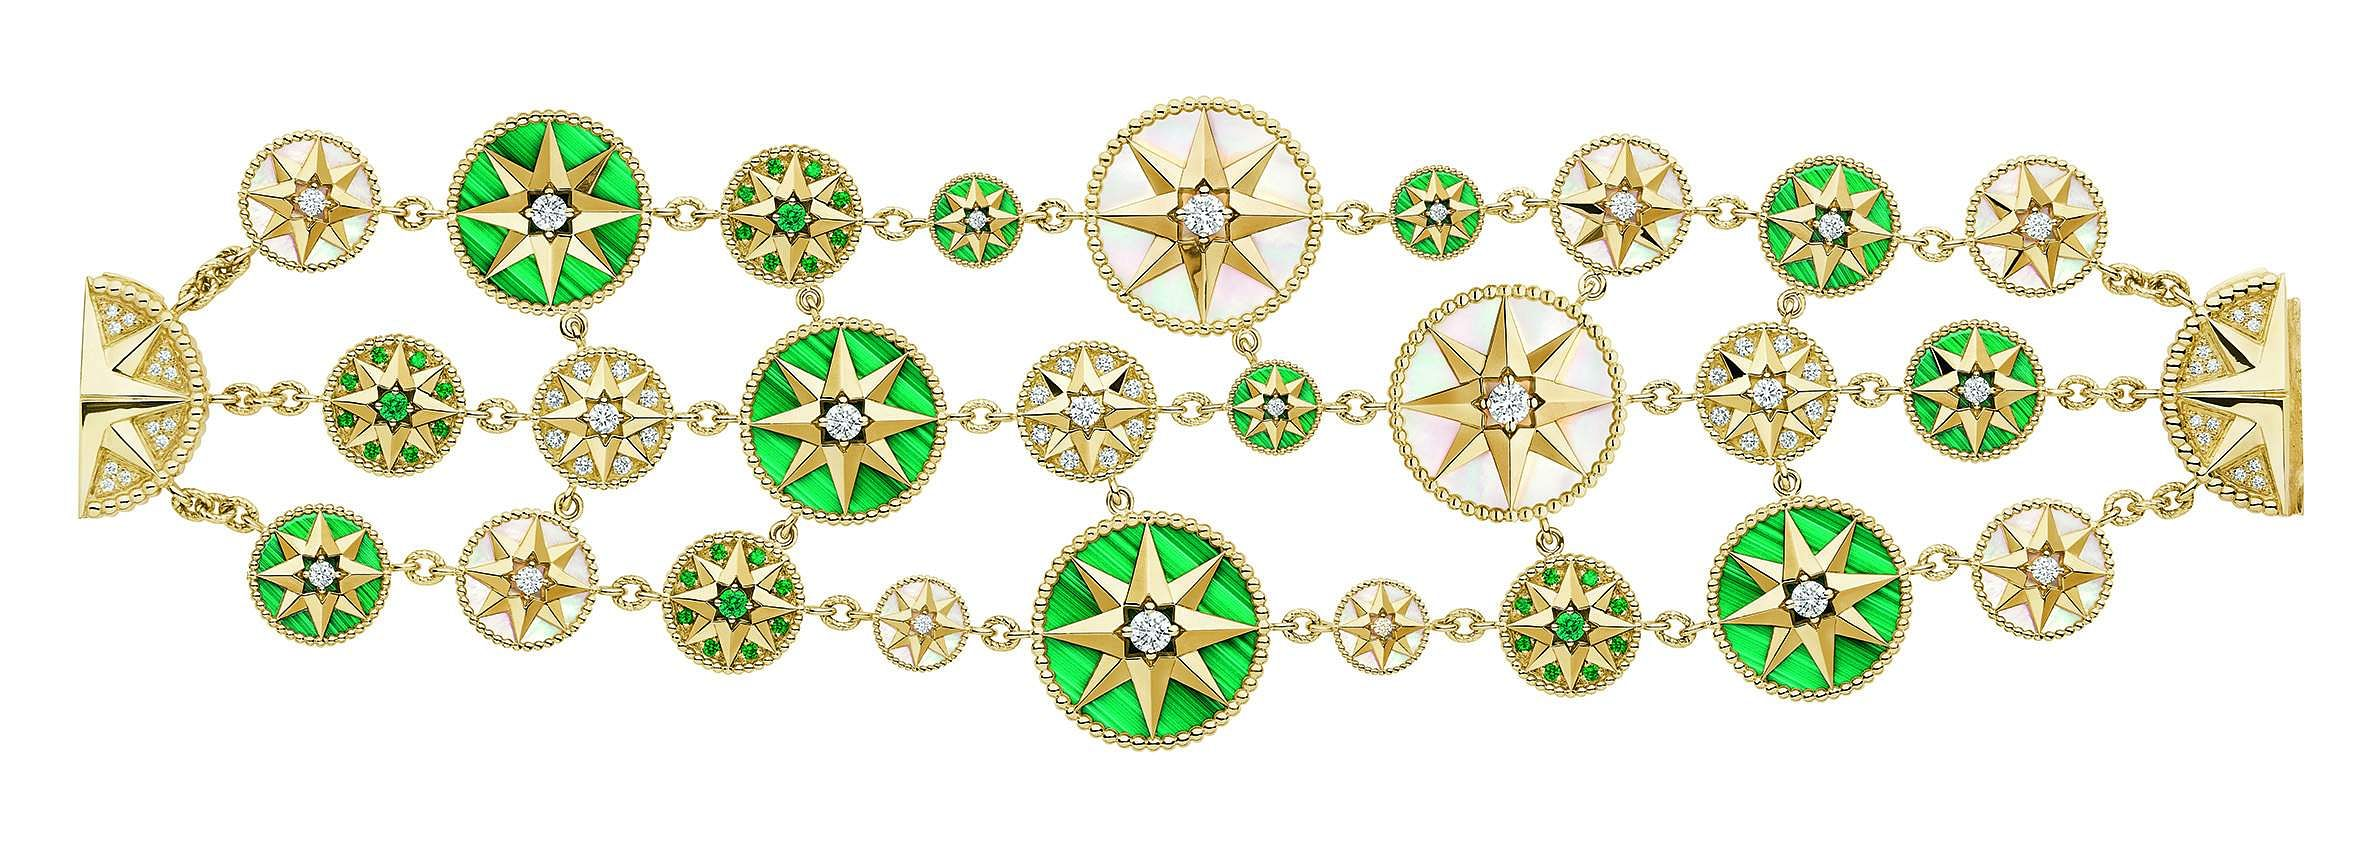 Rose des Vents Masterpiece bracelet with yellow gold, diamonds, emeralds, malachite and mother-of-pearl